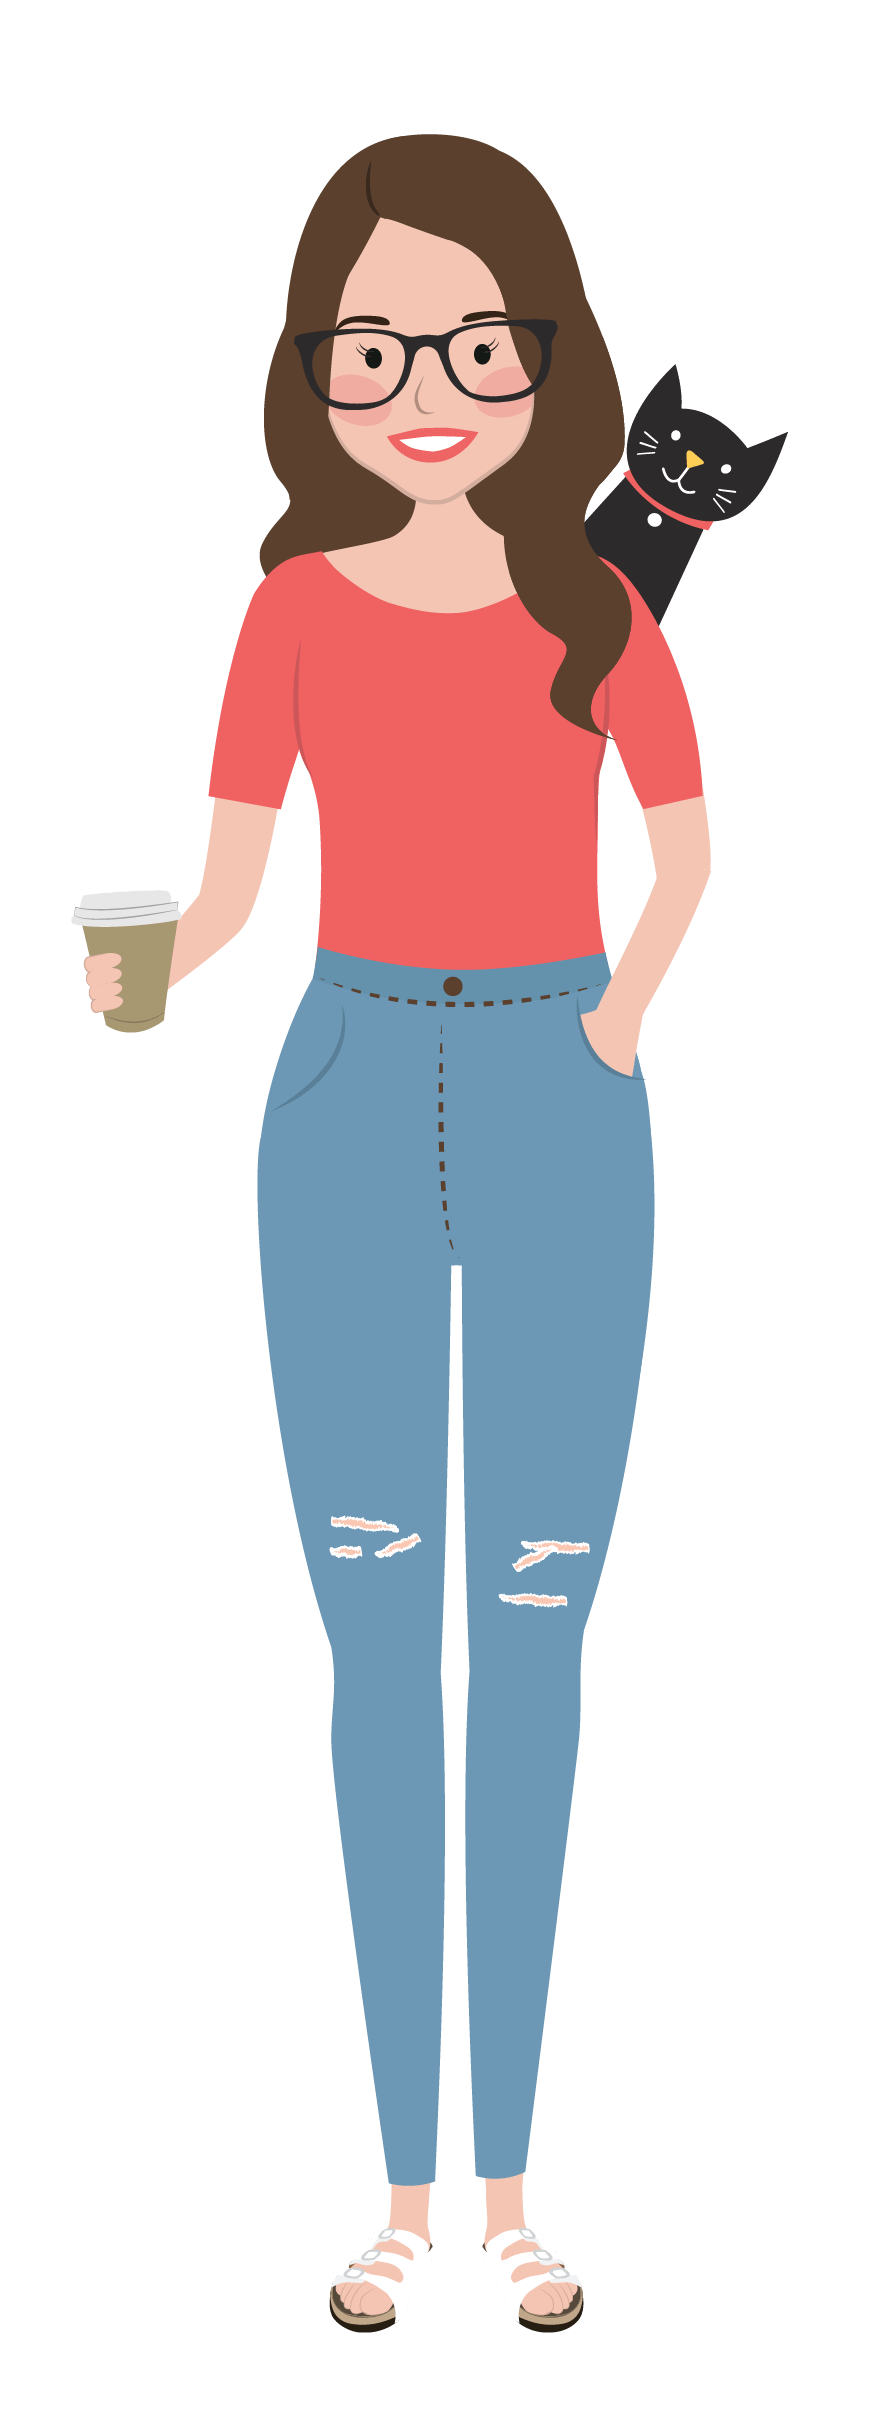 self portrait illustration of Kat Potter with coffee in her hand and a black cat on her shoulder